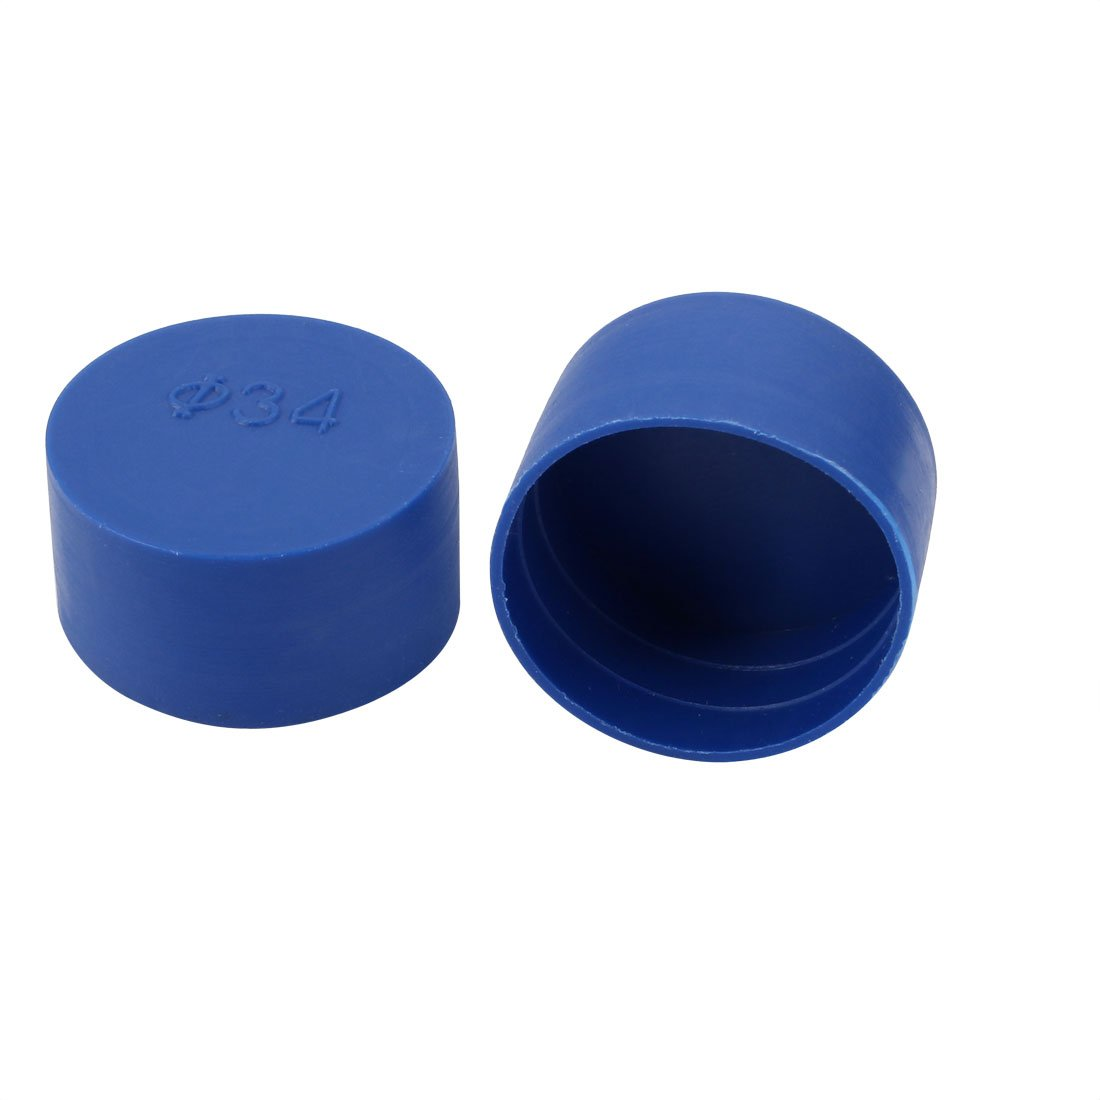 uxcell 2pcs 34mm Inner Dia PE Plastic End Cap Bolt Thread Protector Tube Cover Blue